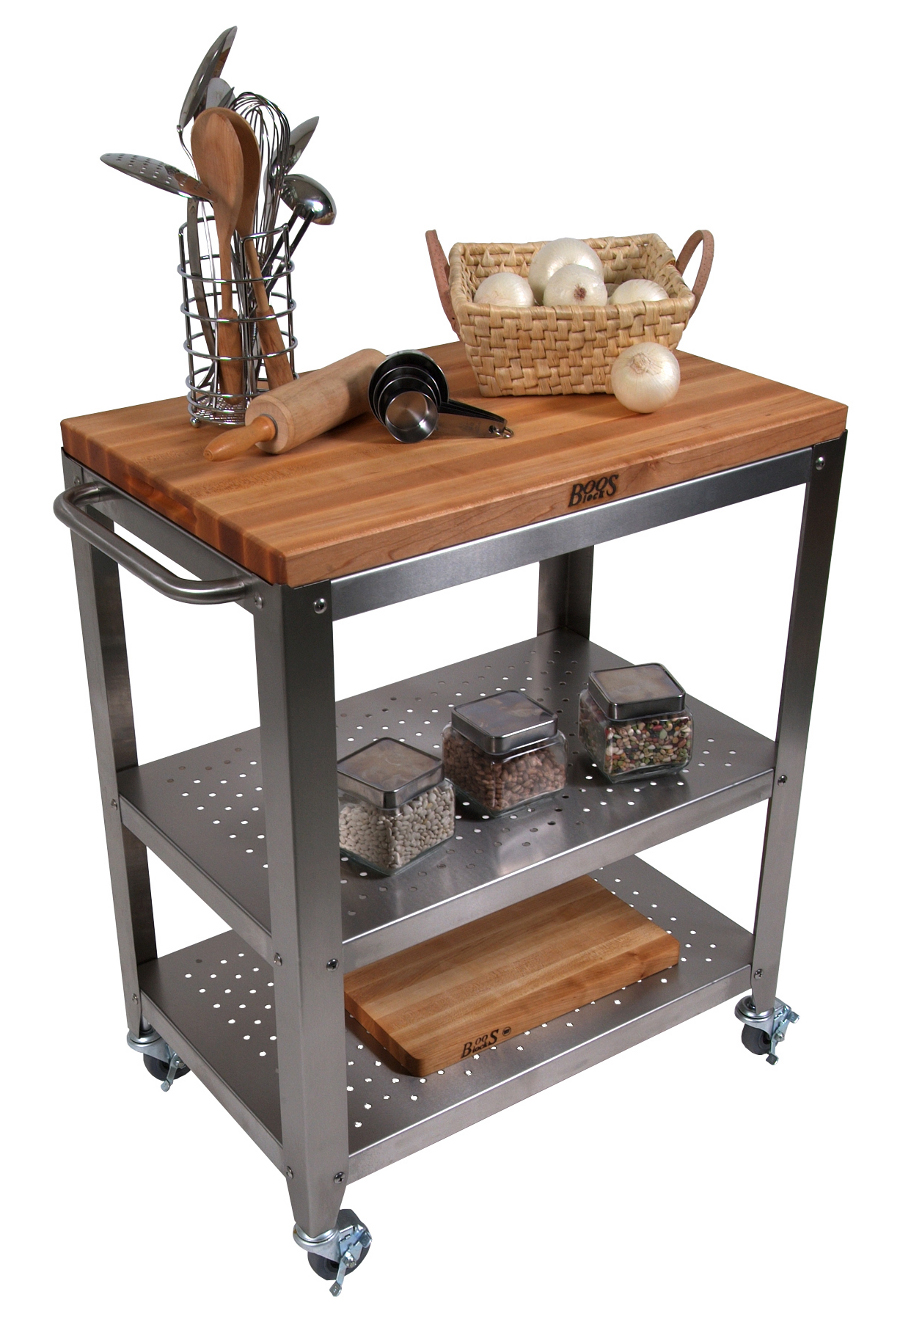 john boos cucina kitchen carts | cucina tables